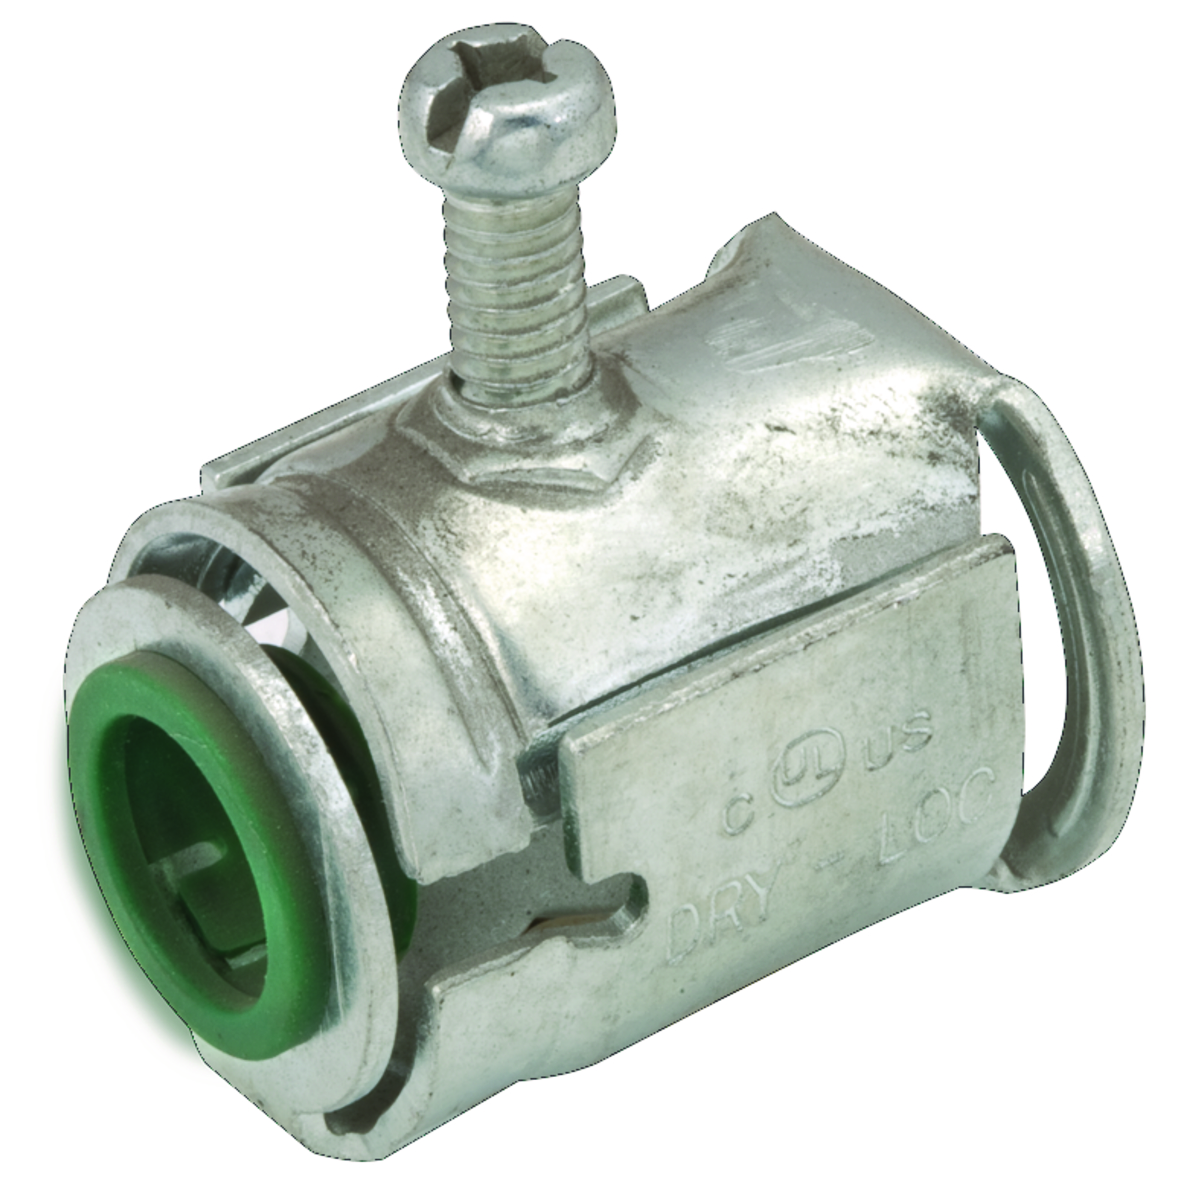 Hubbell-Raco 2800 Cable Connector